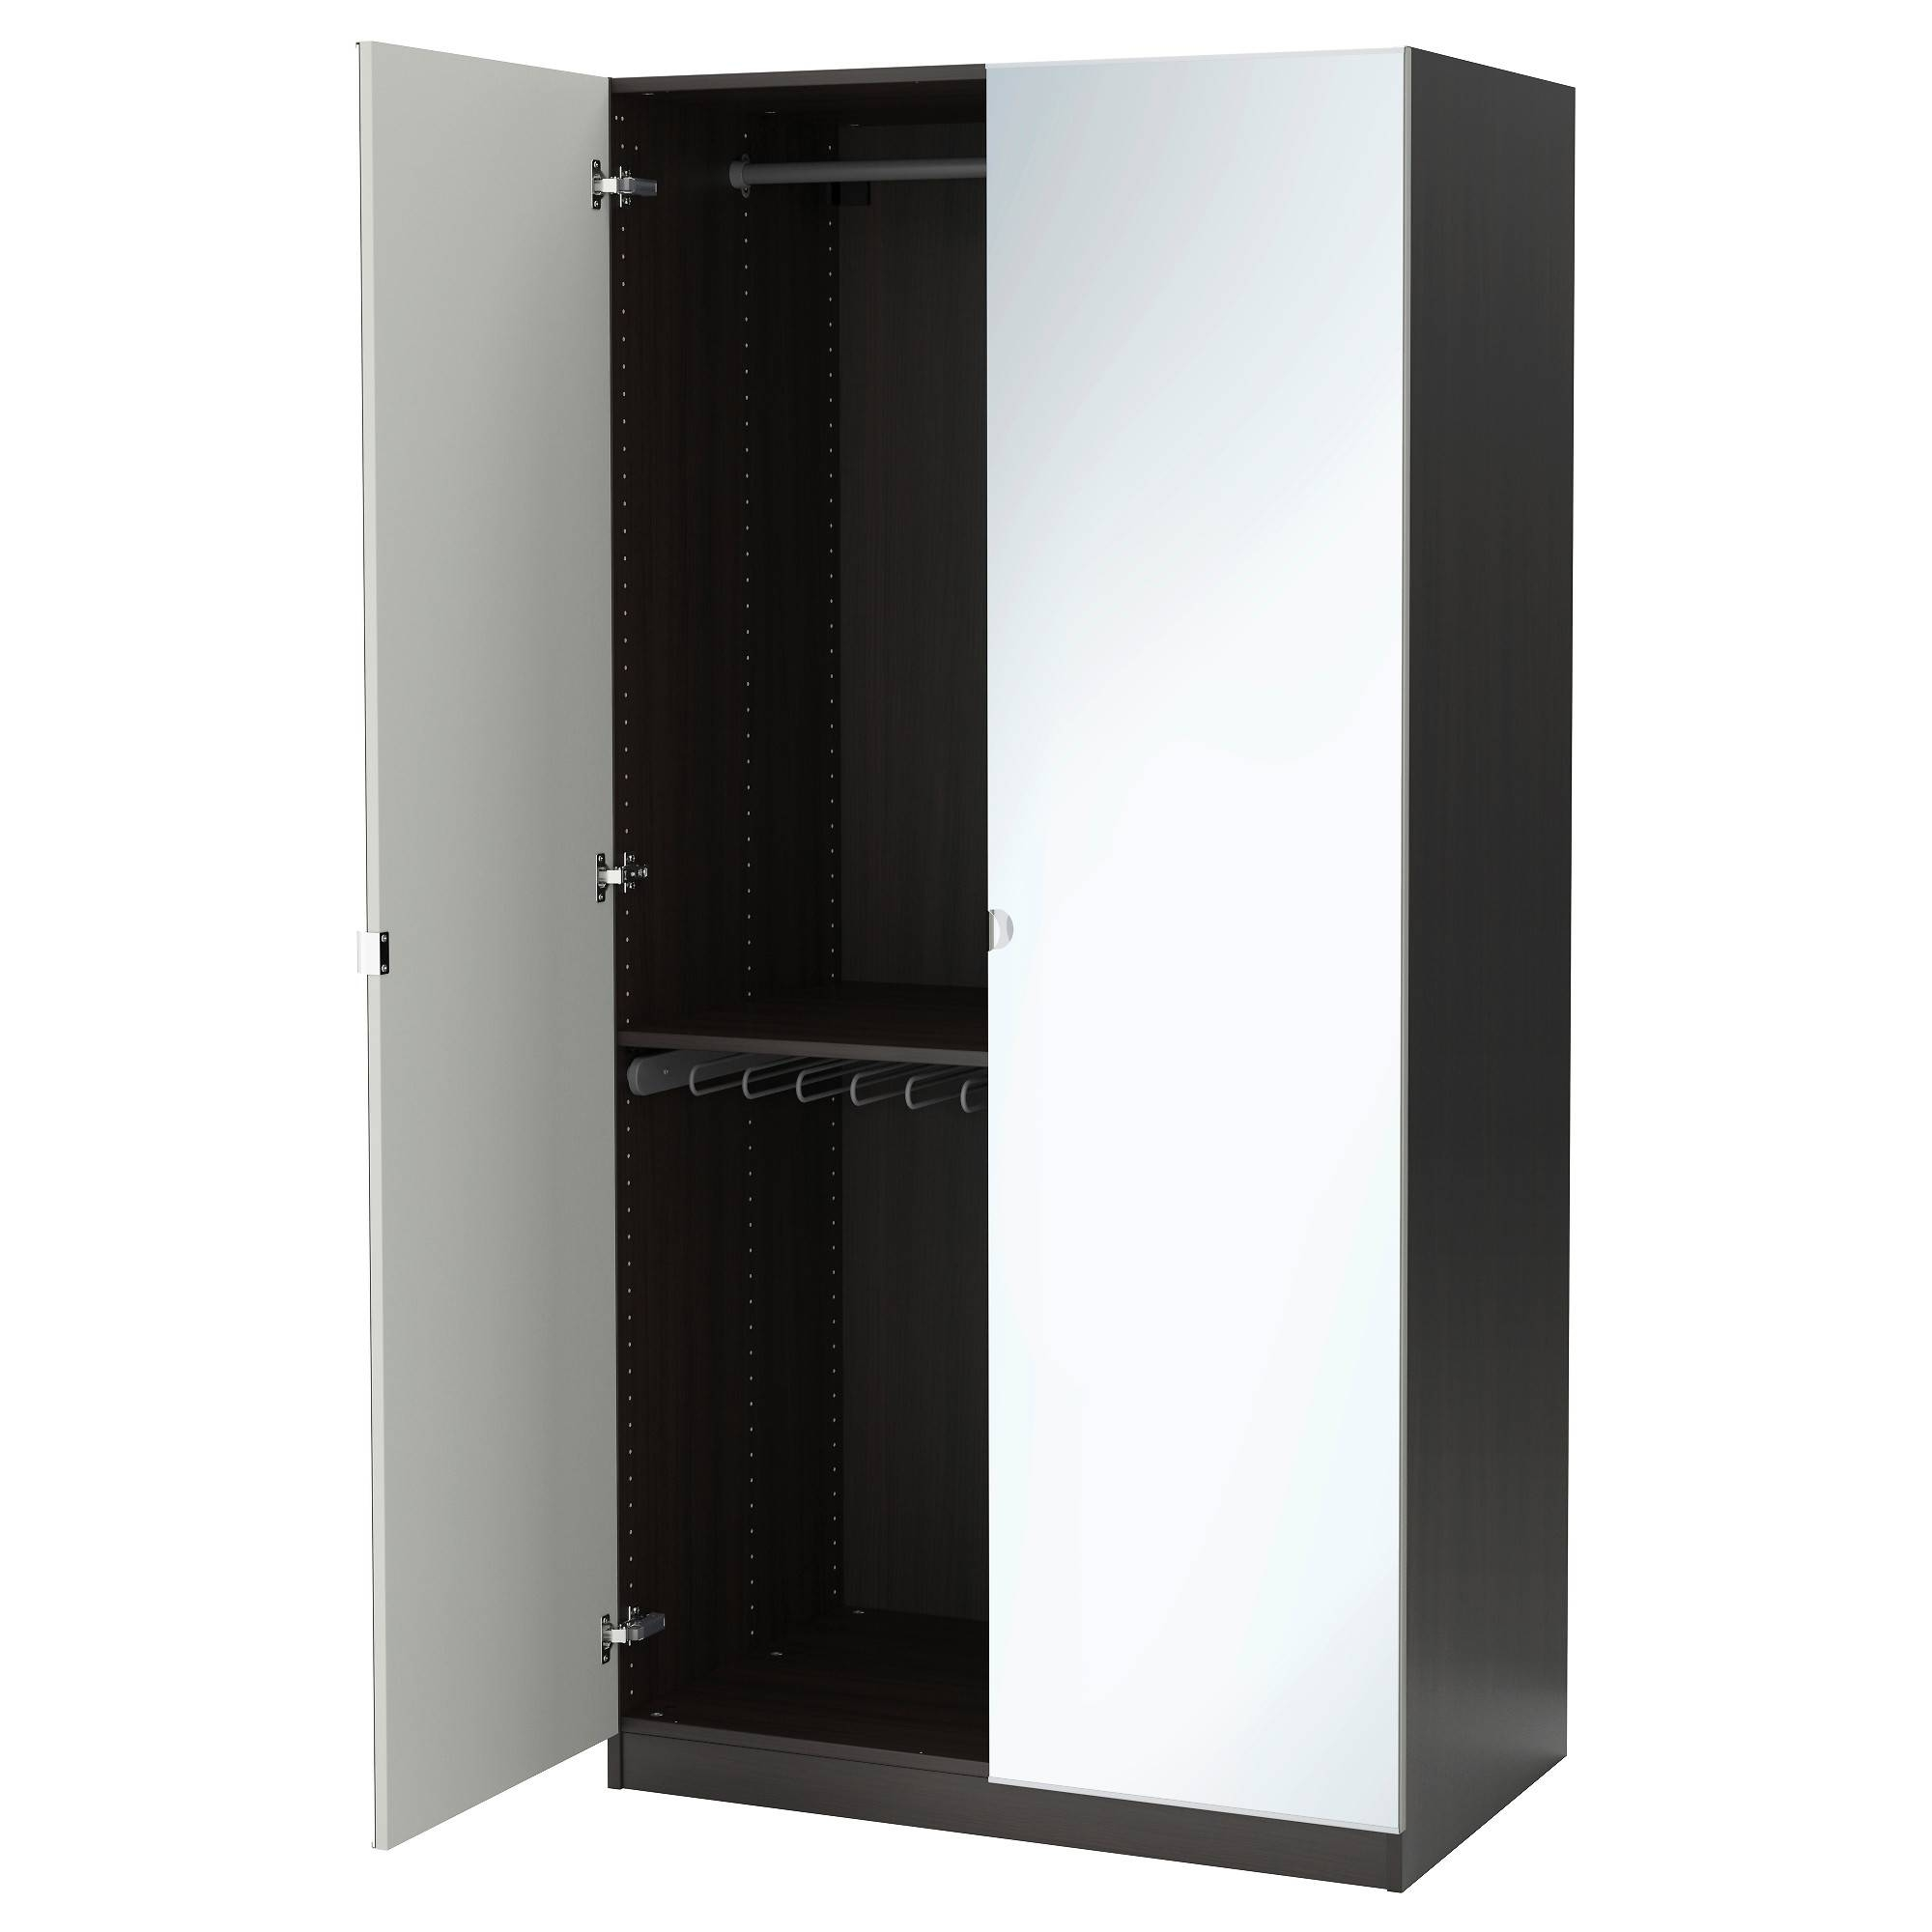 Wardrobes - Pax System - Ikea inside 1 Door Mirrored Wardrobes (Image 10 of 15)